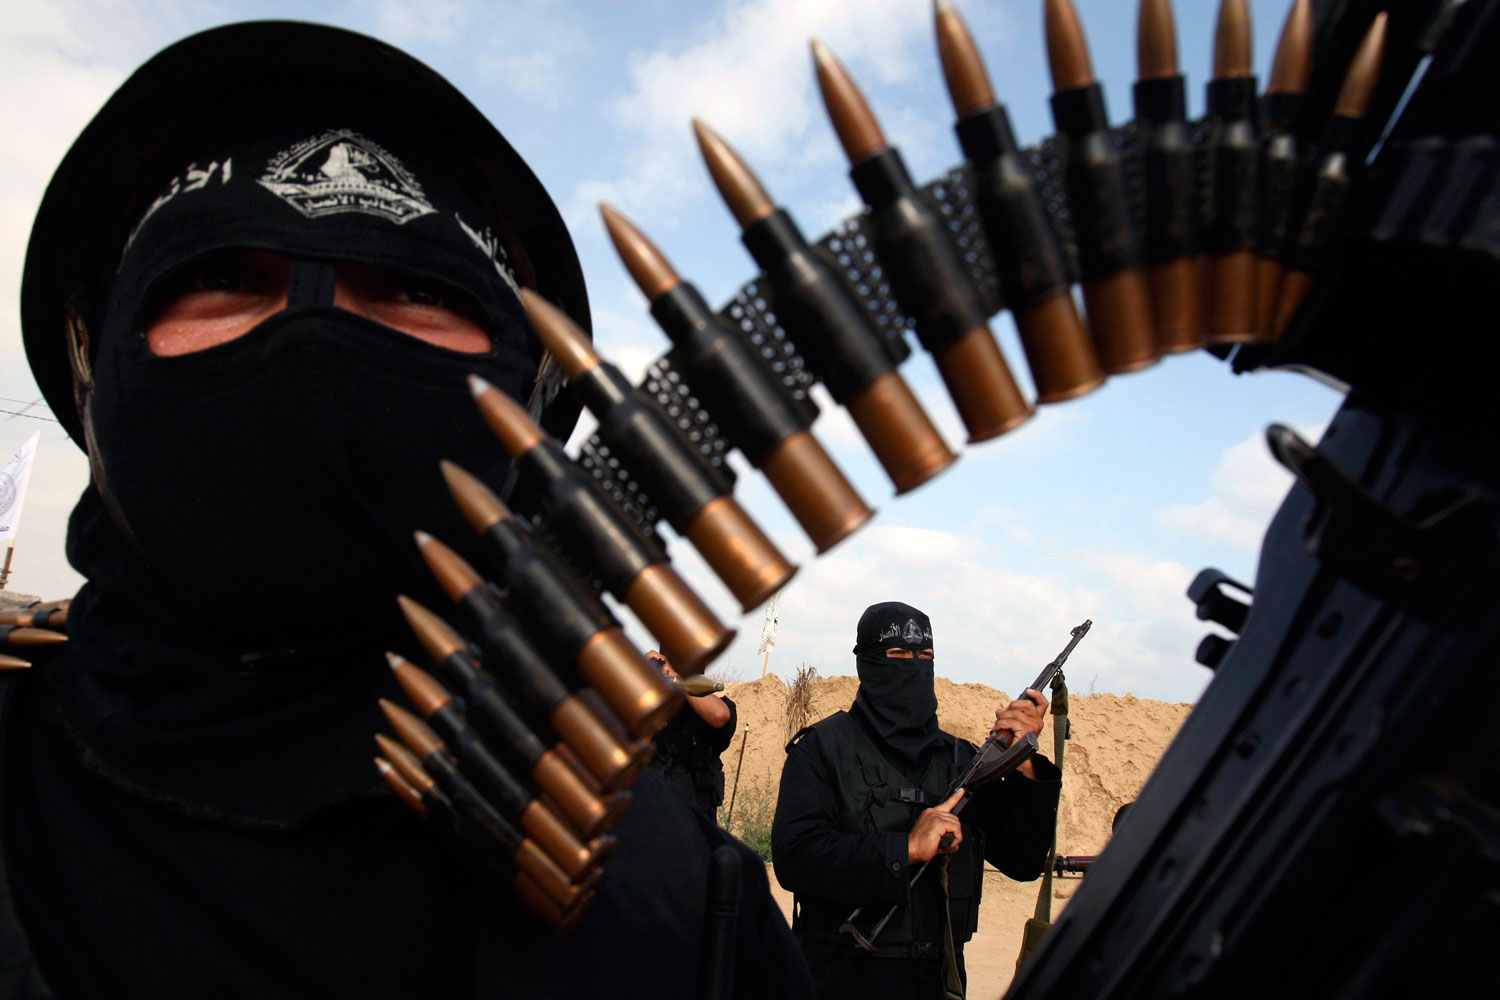 July 7, 2011. Palestinian militants from Al-Ansar brigades, the armed wing of Al-Ahrar movement, demonstrate their skills during a drill in front of the media in Khan Younis in the southern Gaza Strip July 7, 2011.